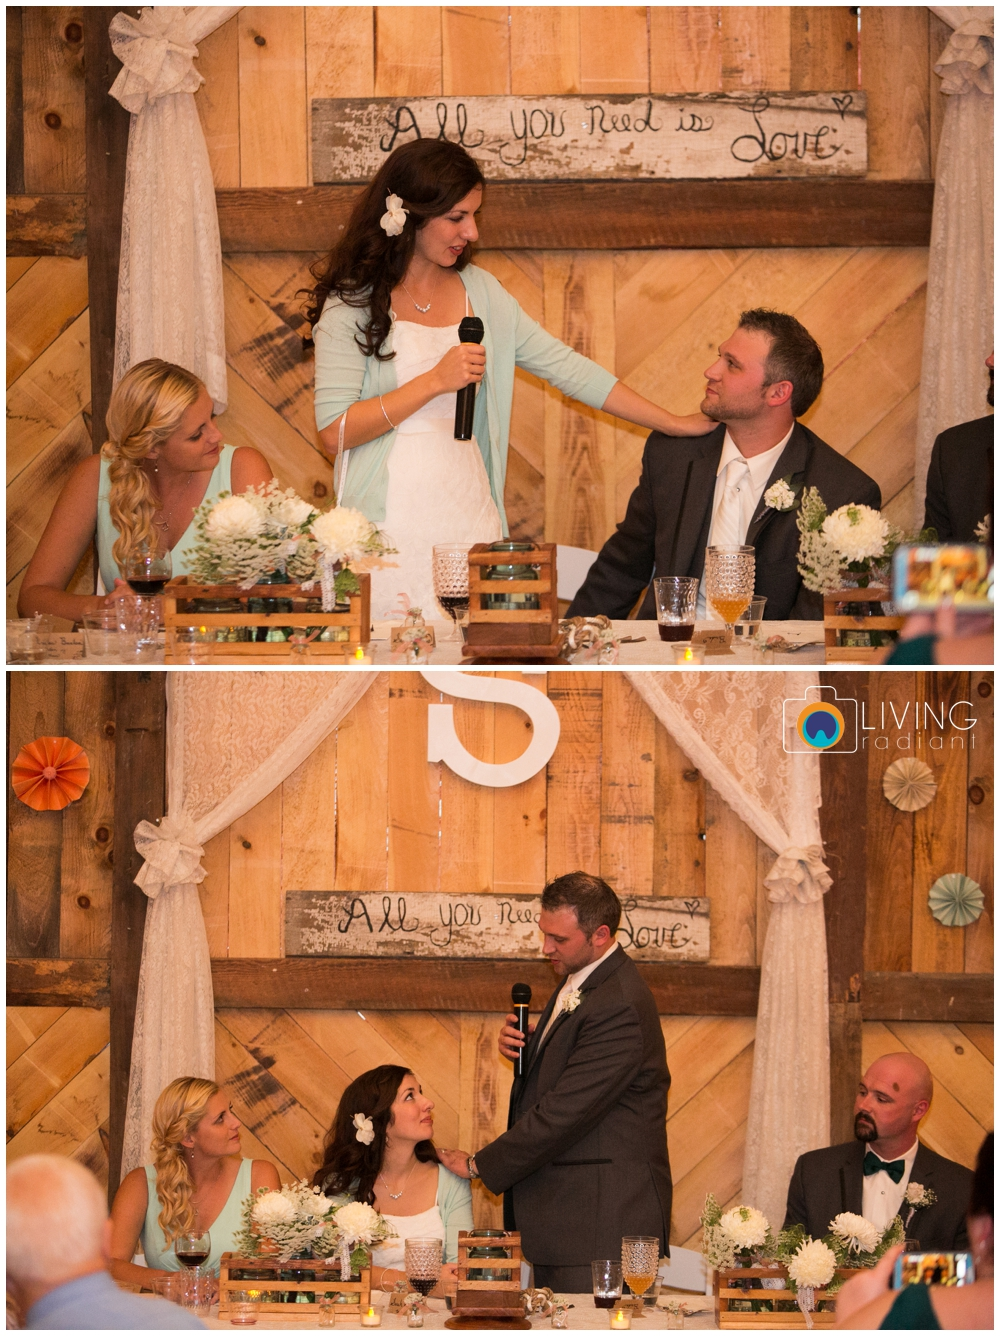 sara+chris-simons-wedding-belleville-winery-pa-living-radiant-photography_0055.jpg